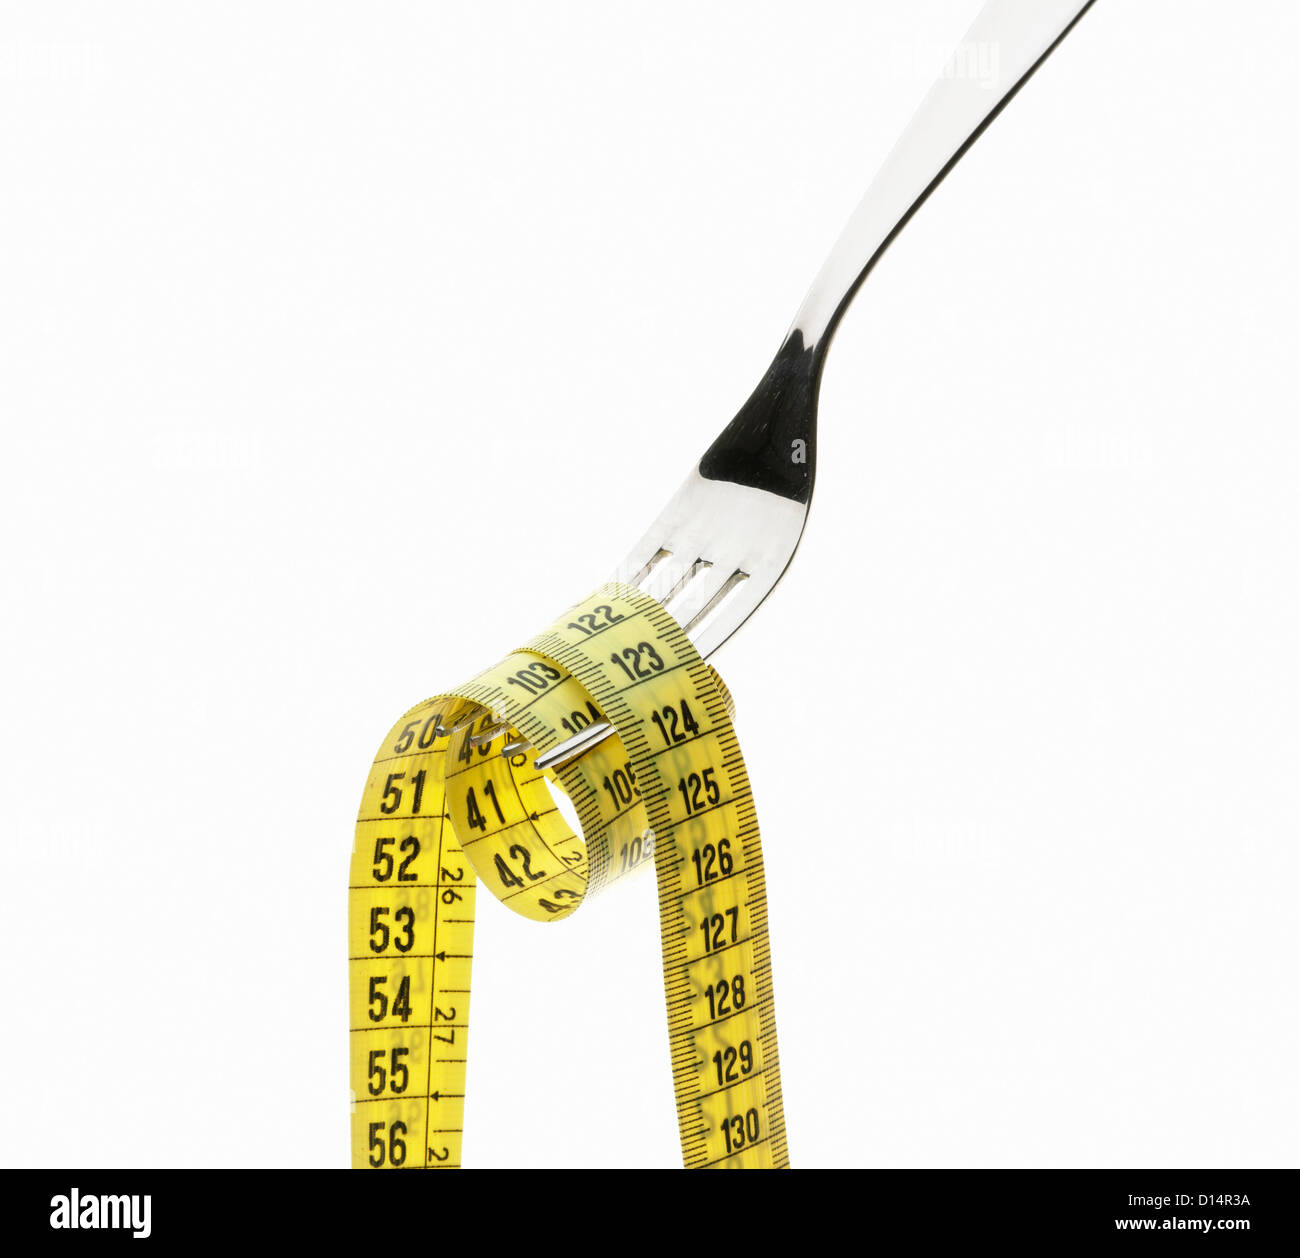 Measuring tape coiled on fork - Stock Image